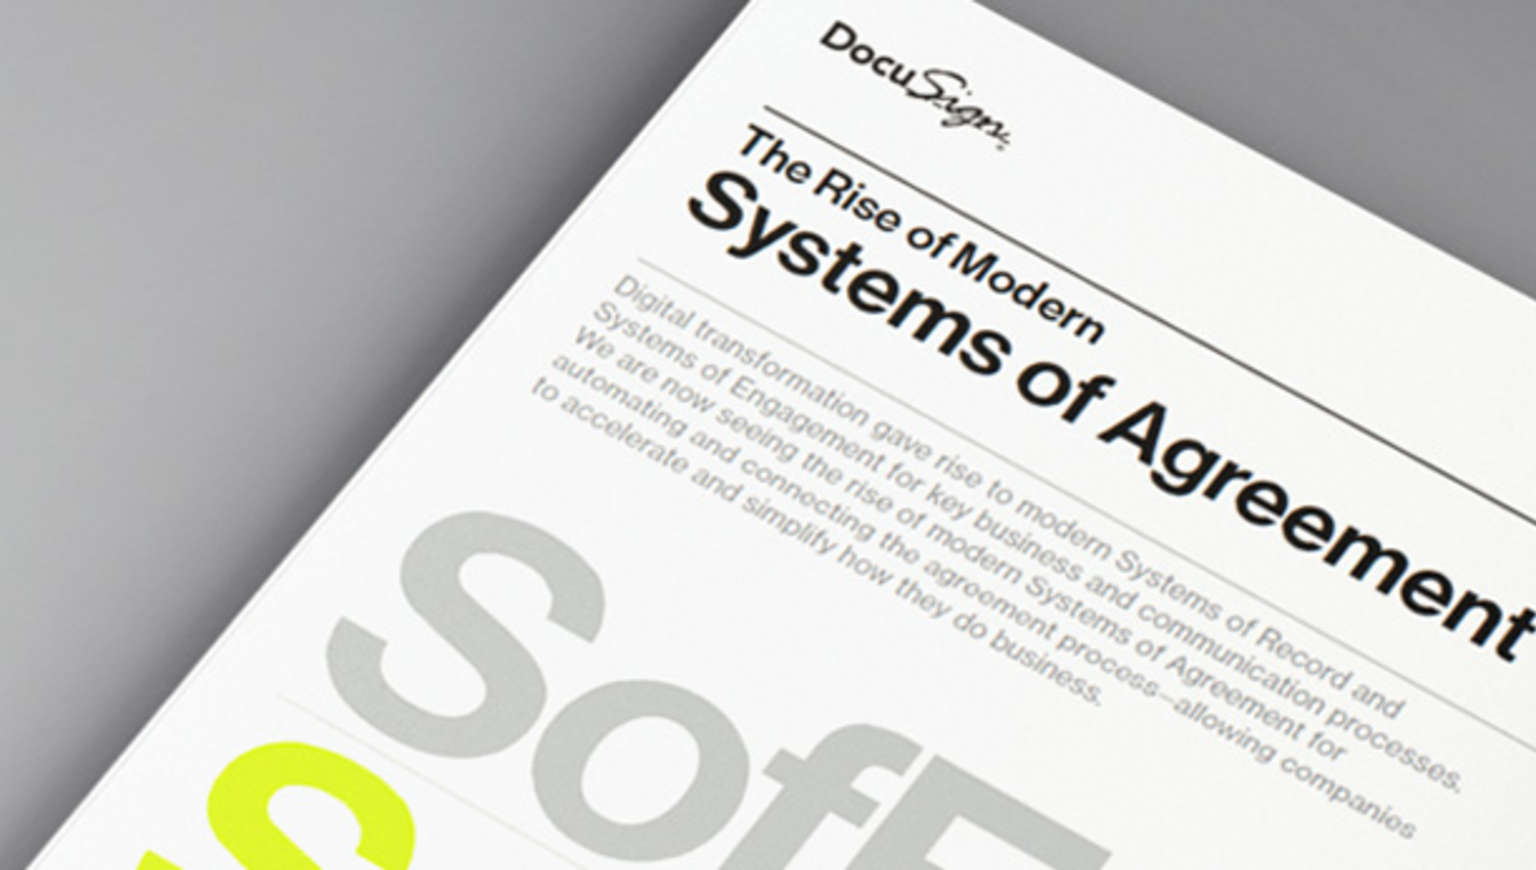 DocuSign enables the rise of the modern System of Agreement.